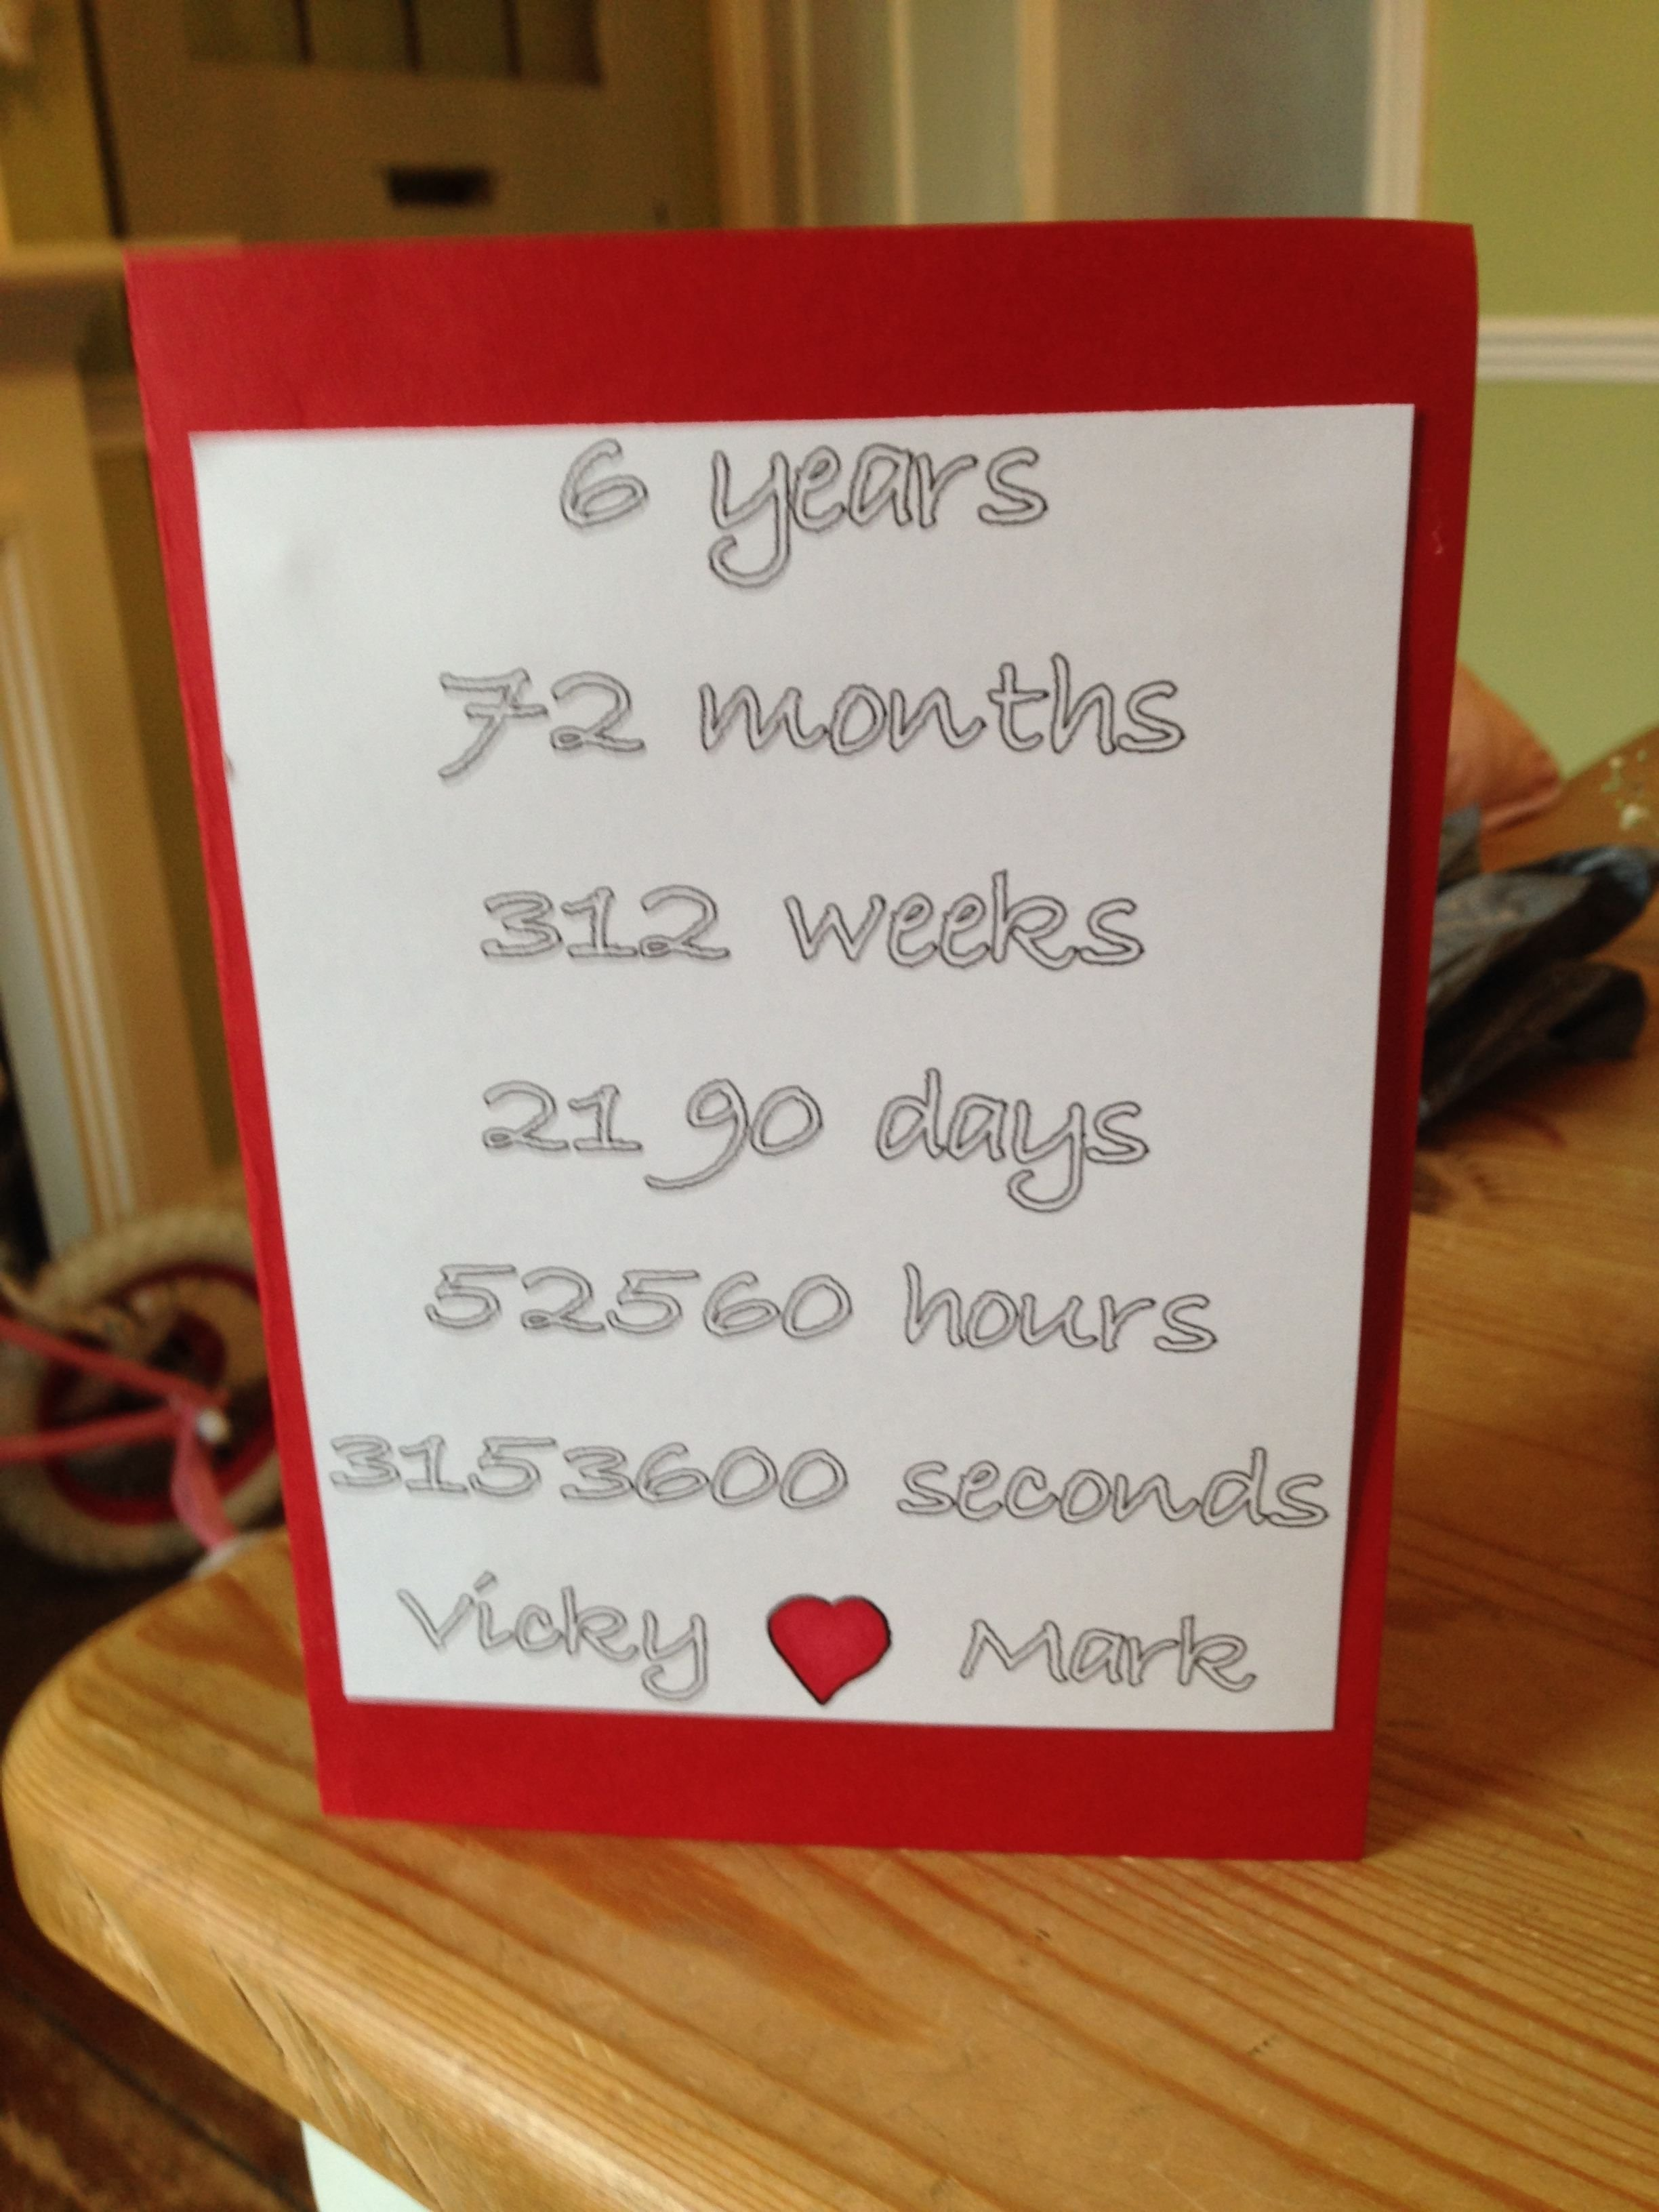 6 year anniversary card | love it | pinterest | anniversaries, gift